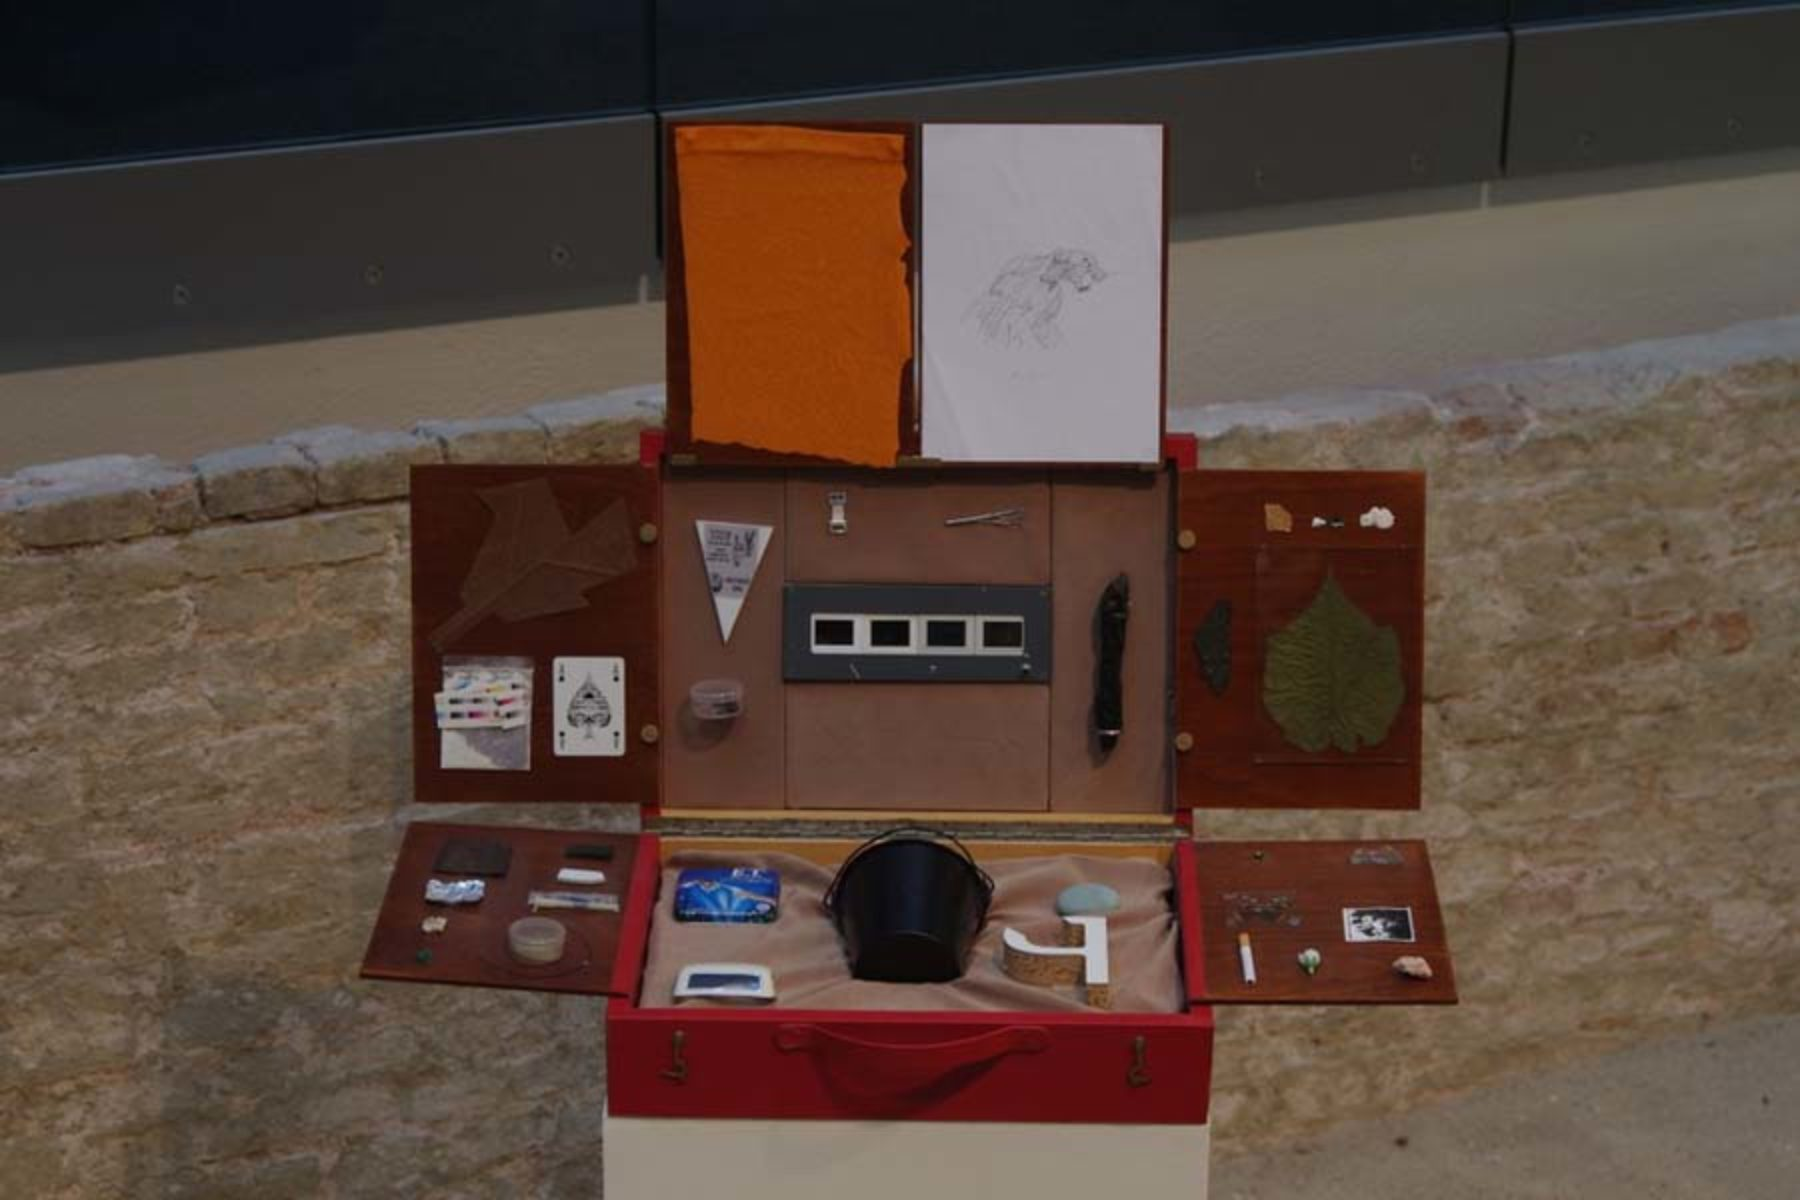 I. Moudov, Fragments #5, 2002-10, hand-made suitcase, stolen fragments from artworks, 6